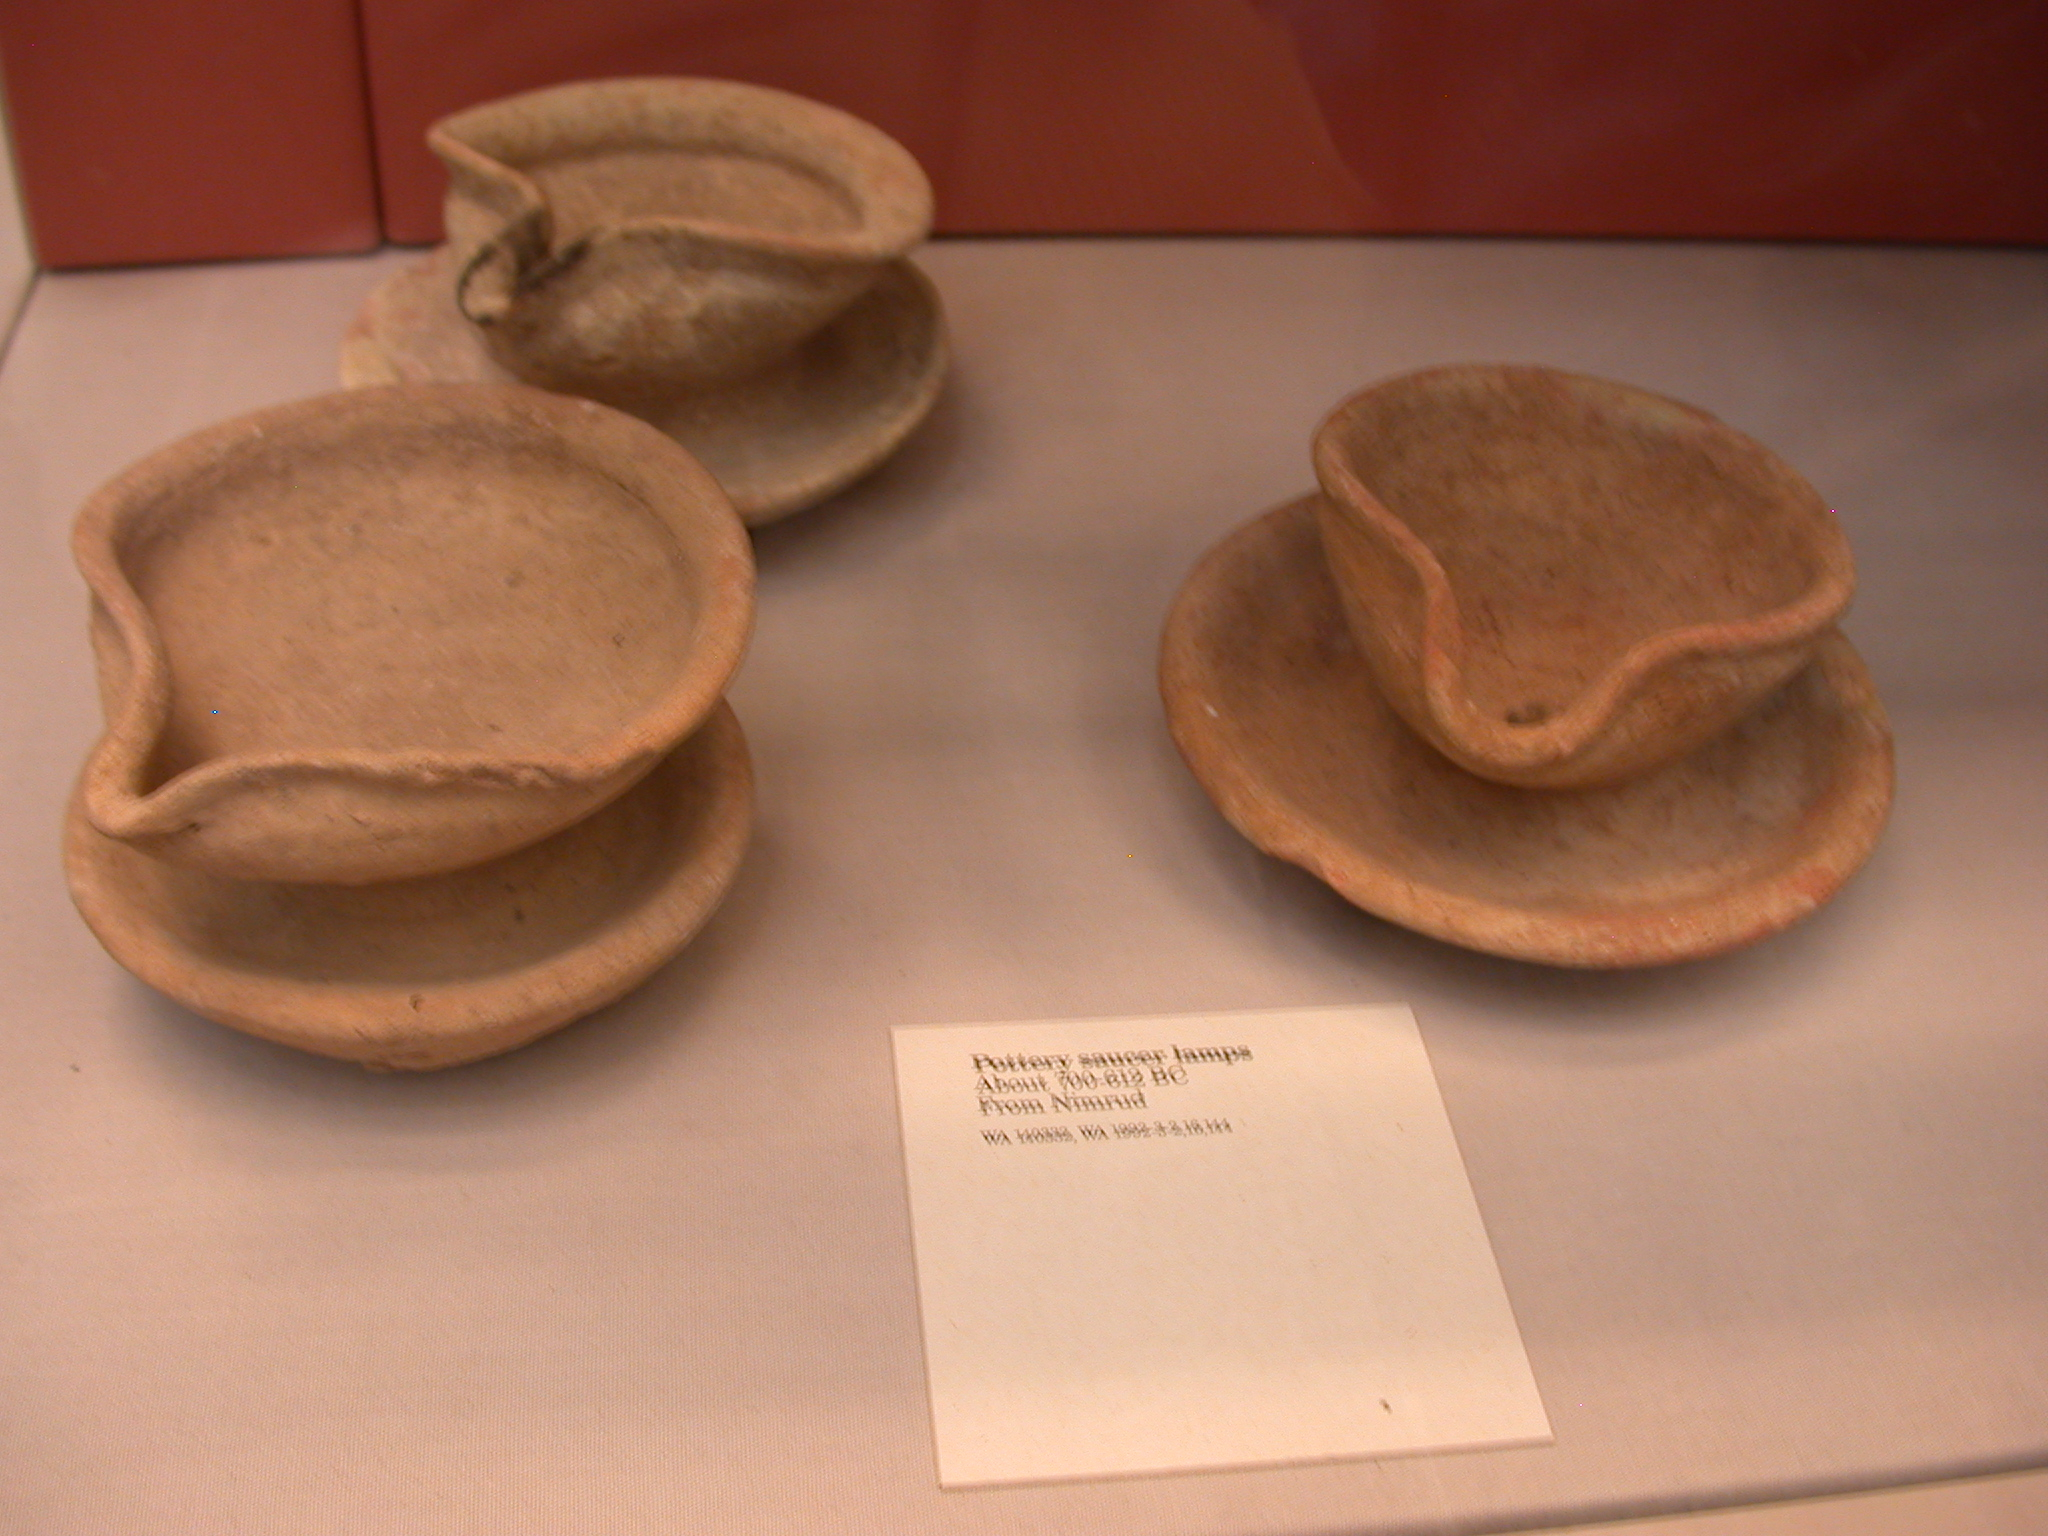 Pottery Saucer Lamps, About 700-612 BCE, Nimrud, Assyria, in British Museum, London, England